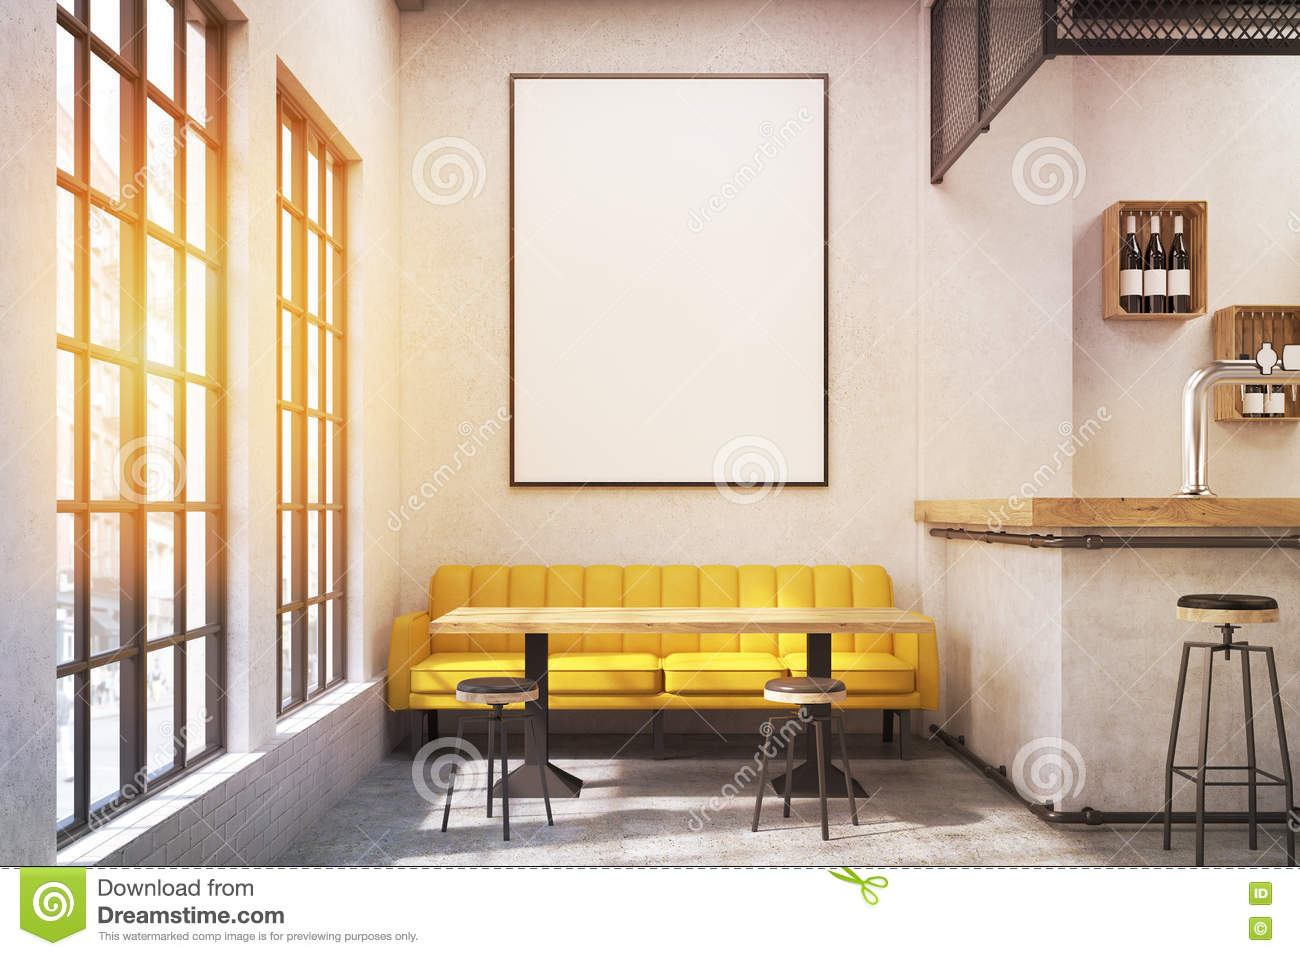 cafe with a yellow sofa, toned stock illustration - image: 82644380